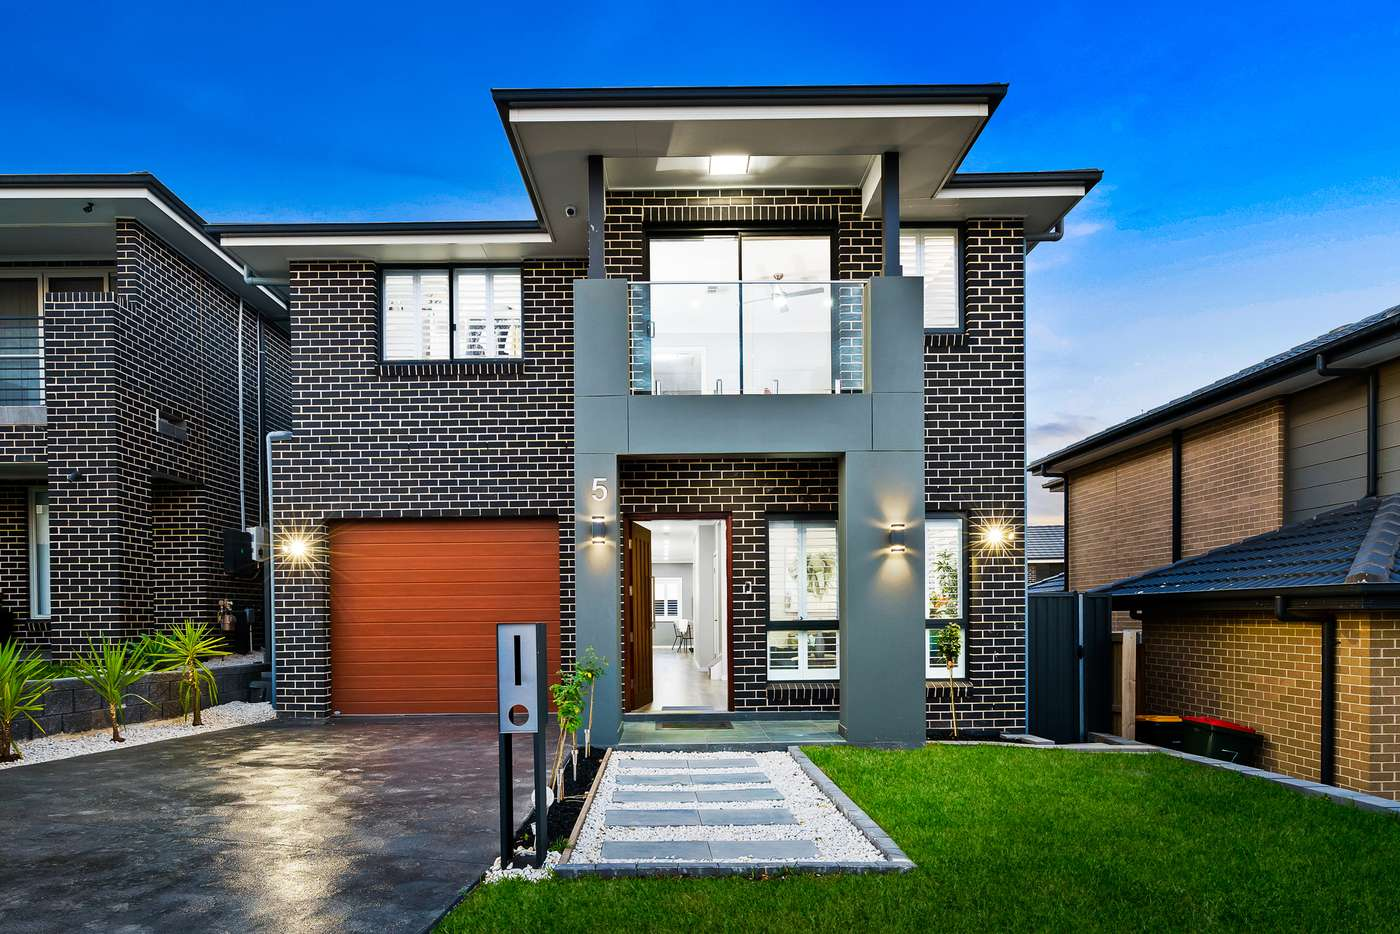 Main view of Homely house listing, 5 Deguara Street, Schofields NSW 2762